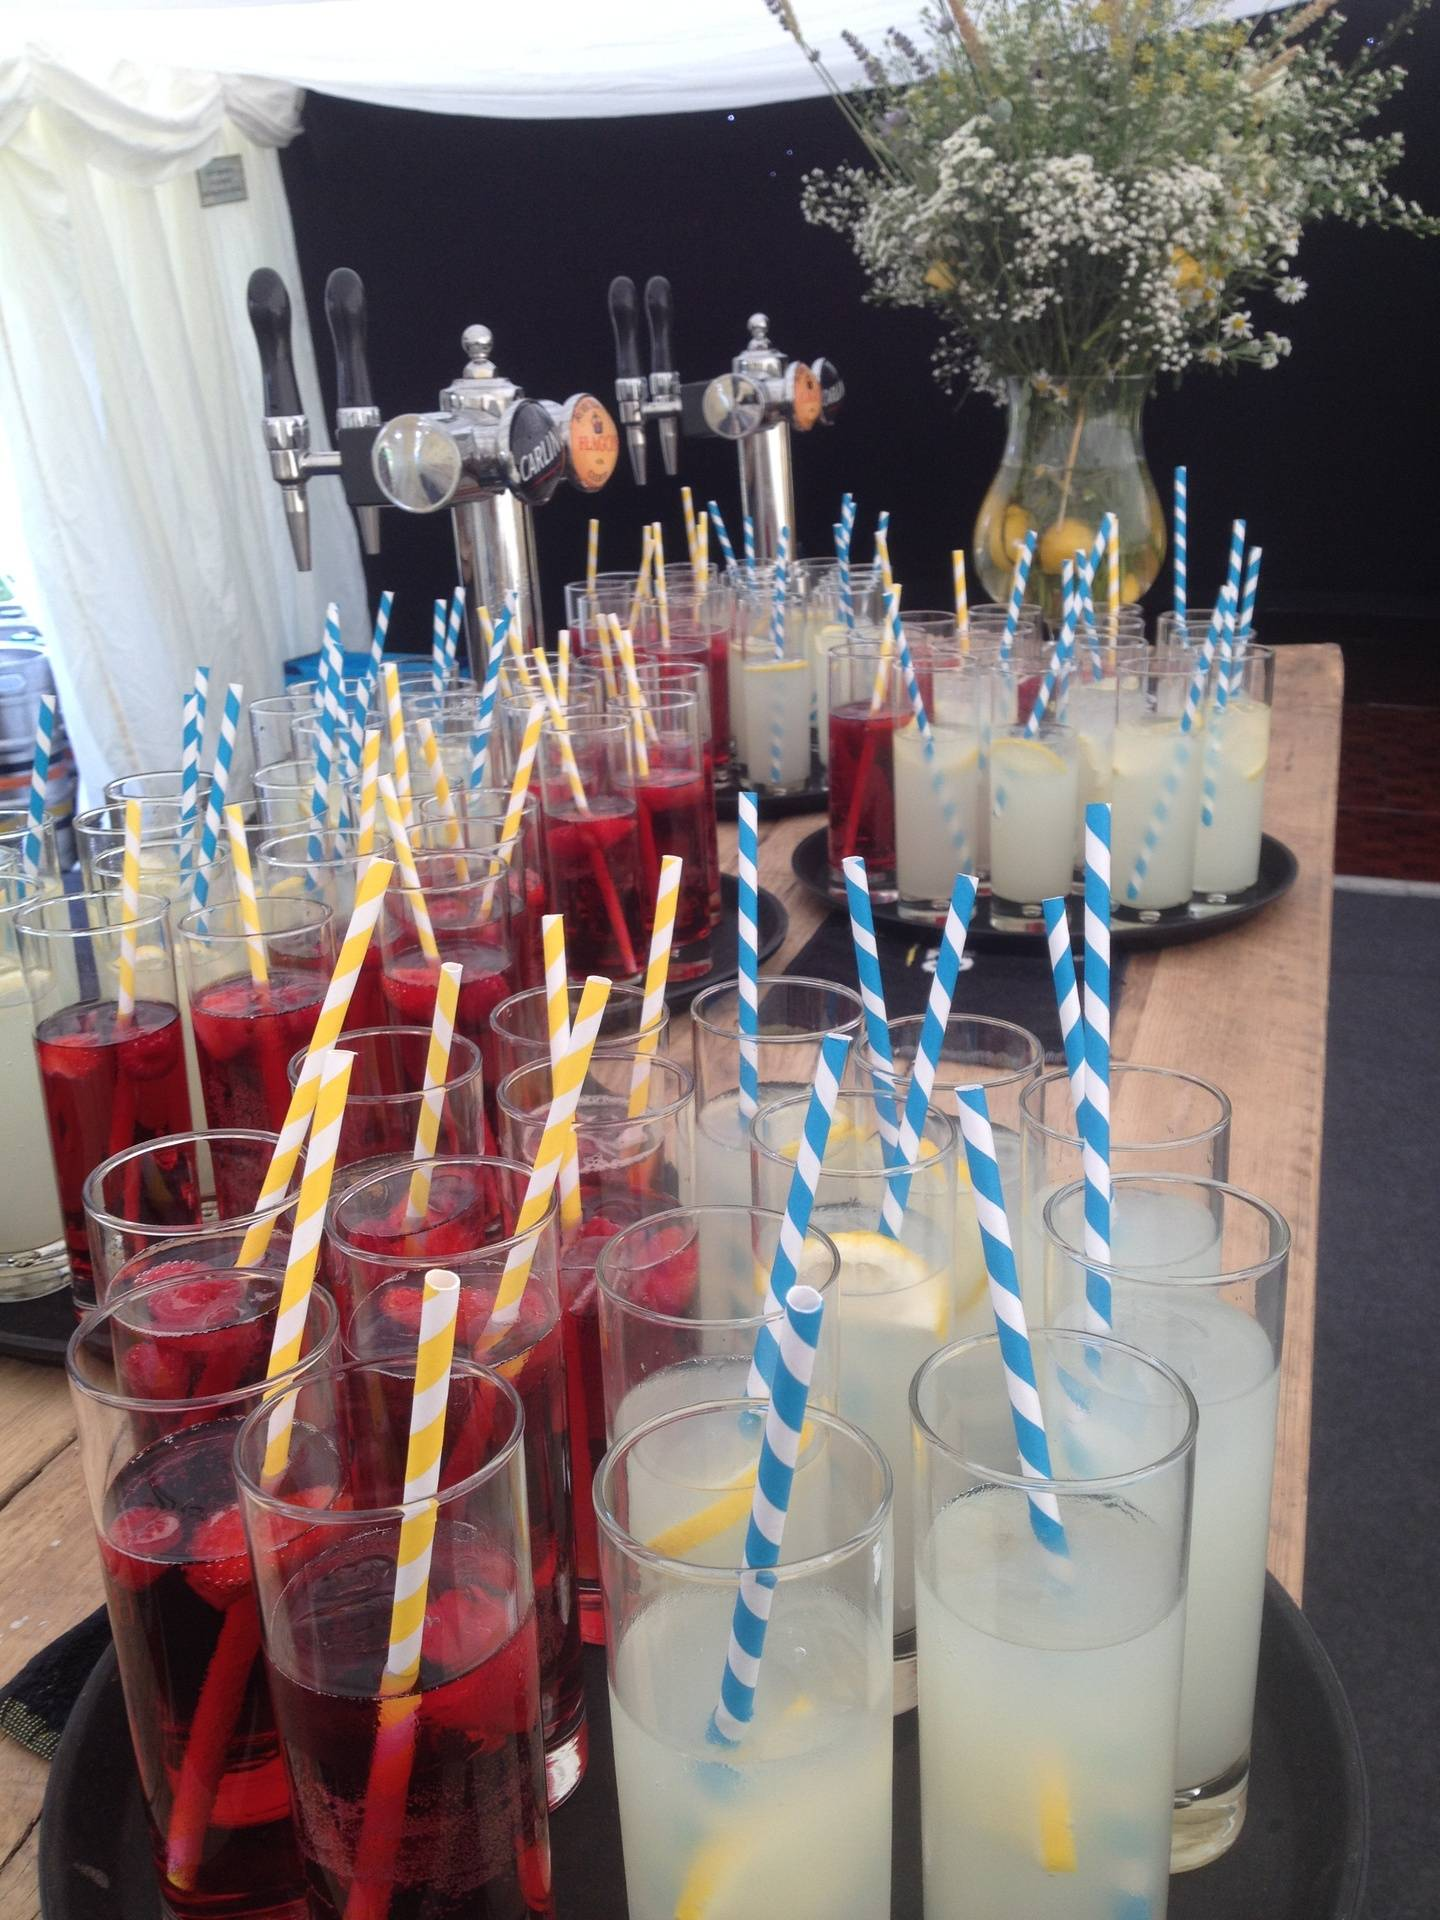 Elderflower and blackberry Pimms and Gin and cloudy lemonade